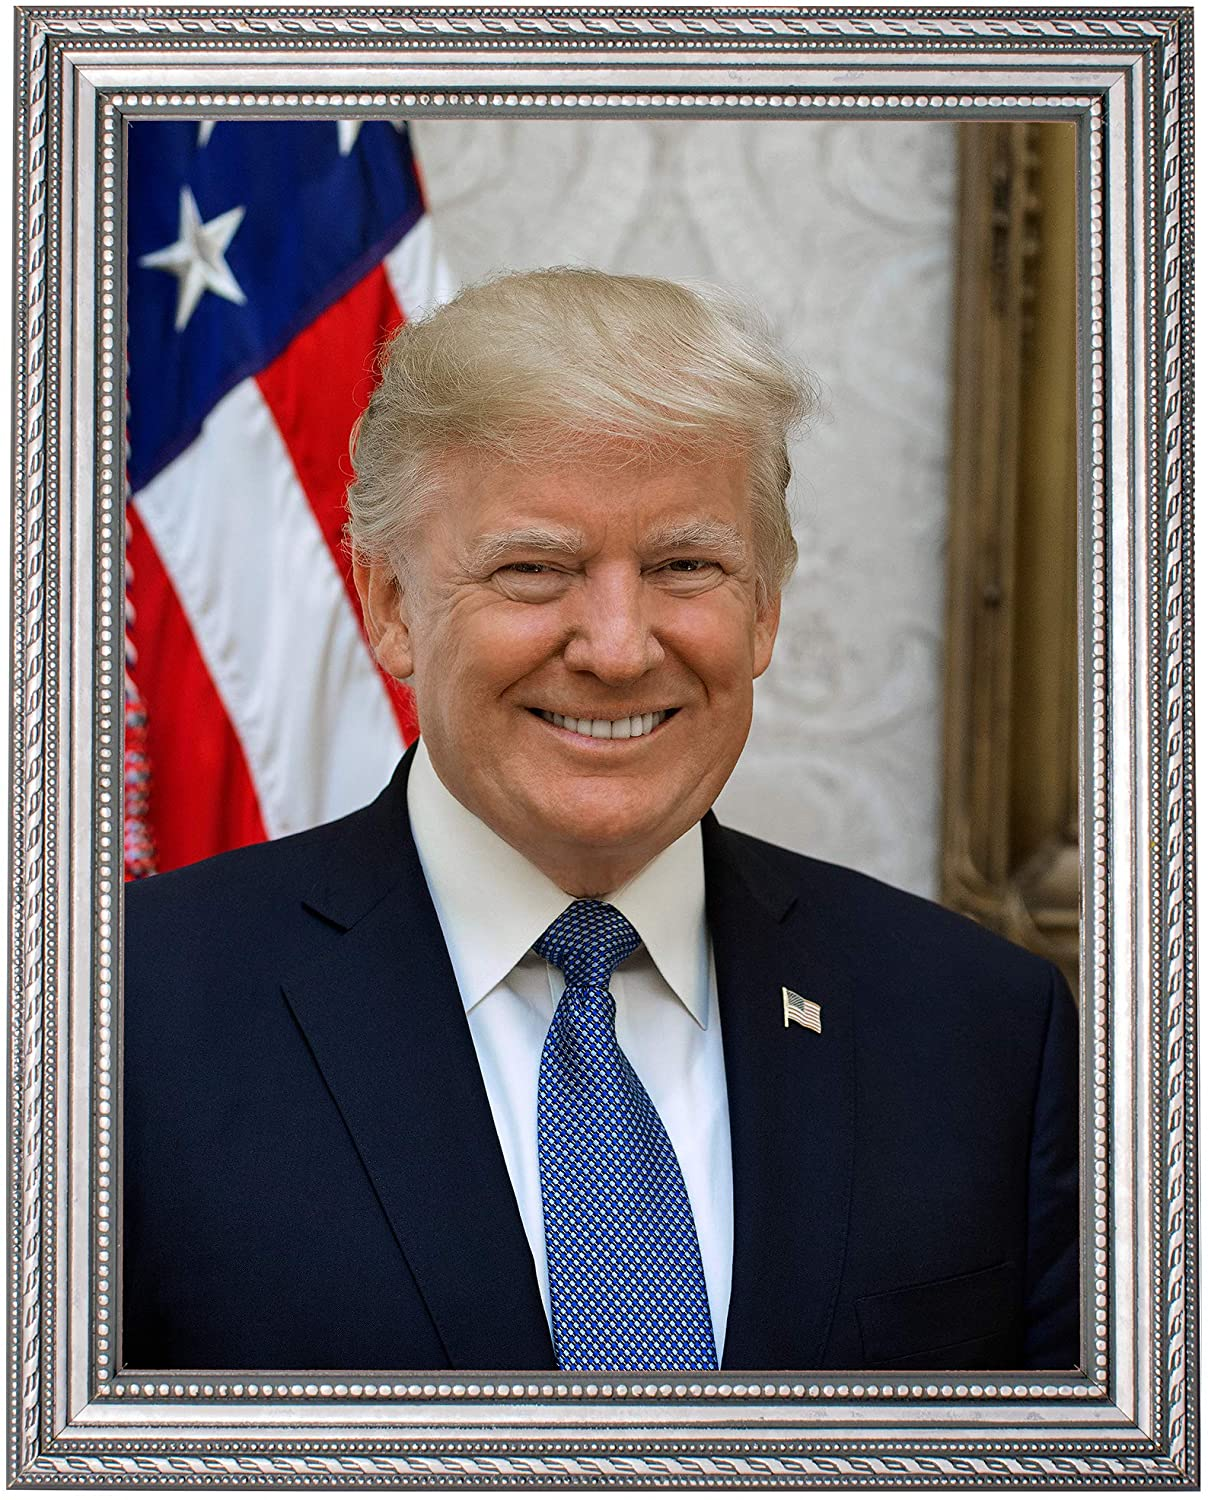 Donald J. Trump Photograph in a Silver Ornate Frame - Historical Artwork from 2017 - (8.5